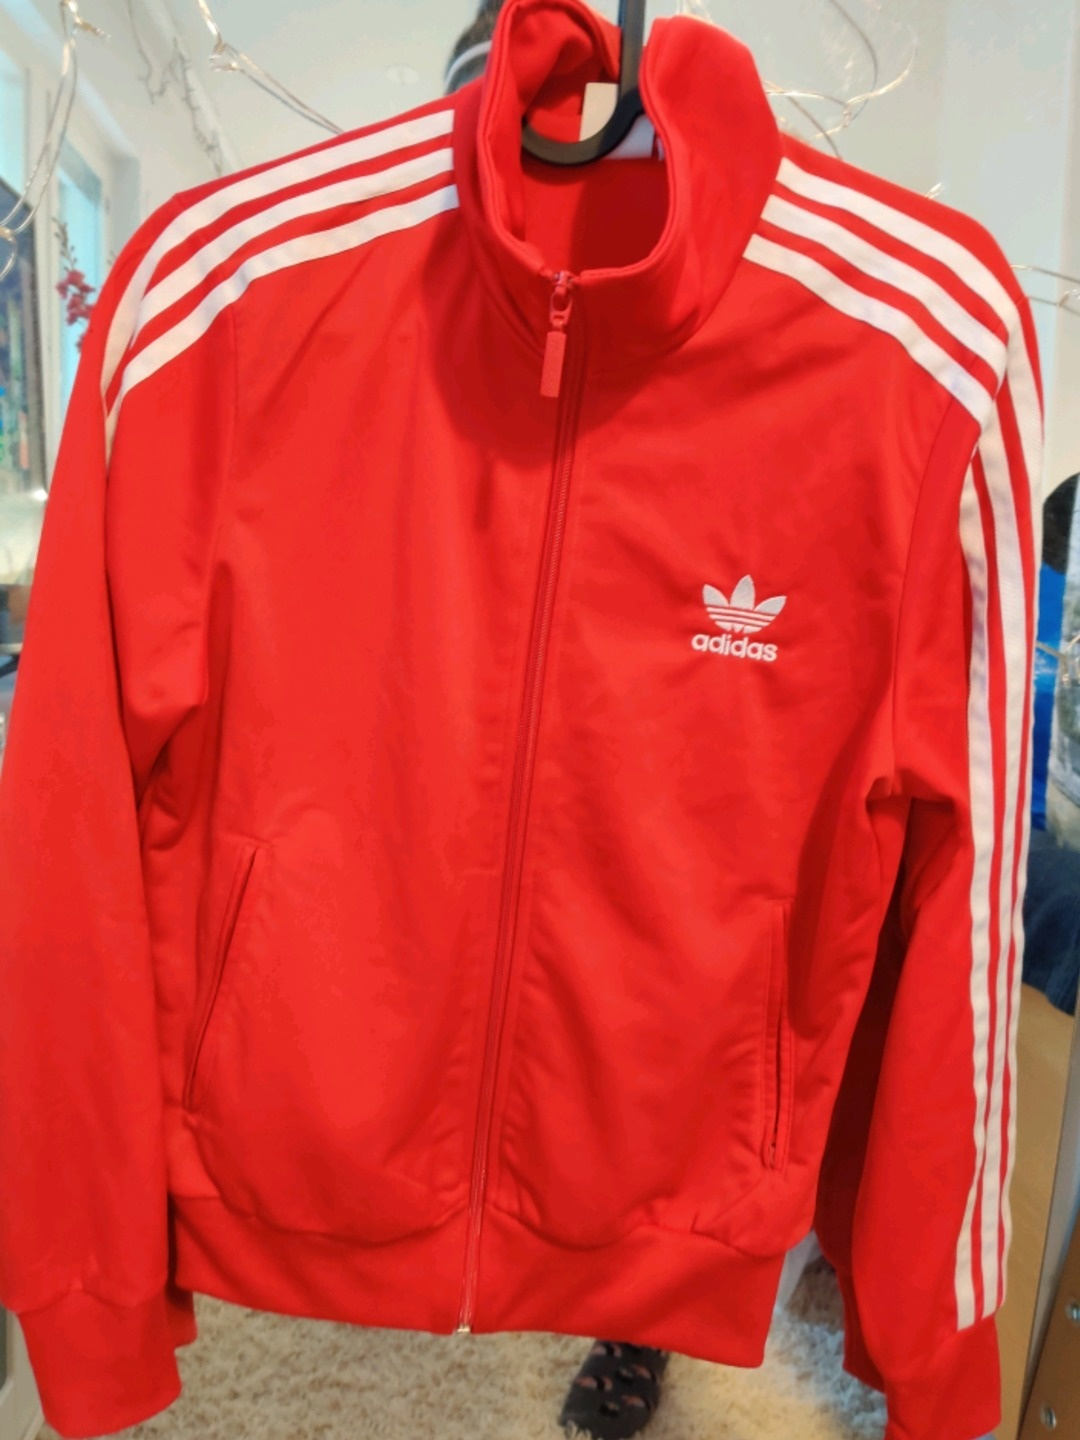 Naiset hupparit & collegepaidat - ADIDAS photo 1